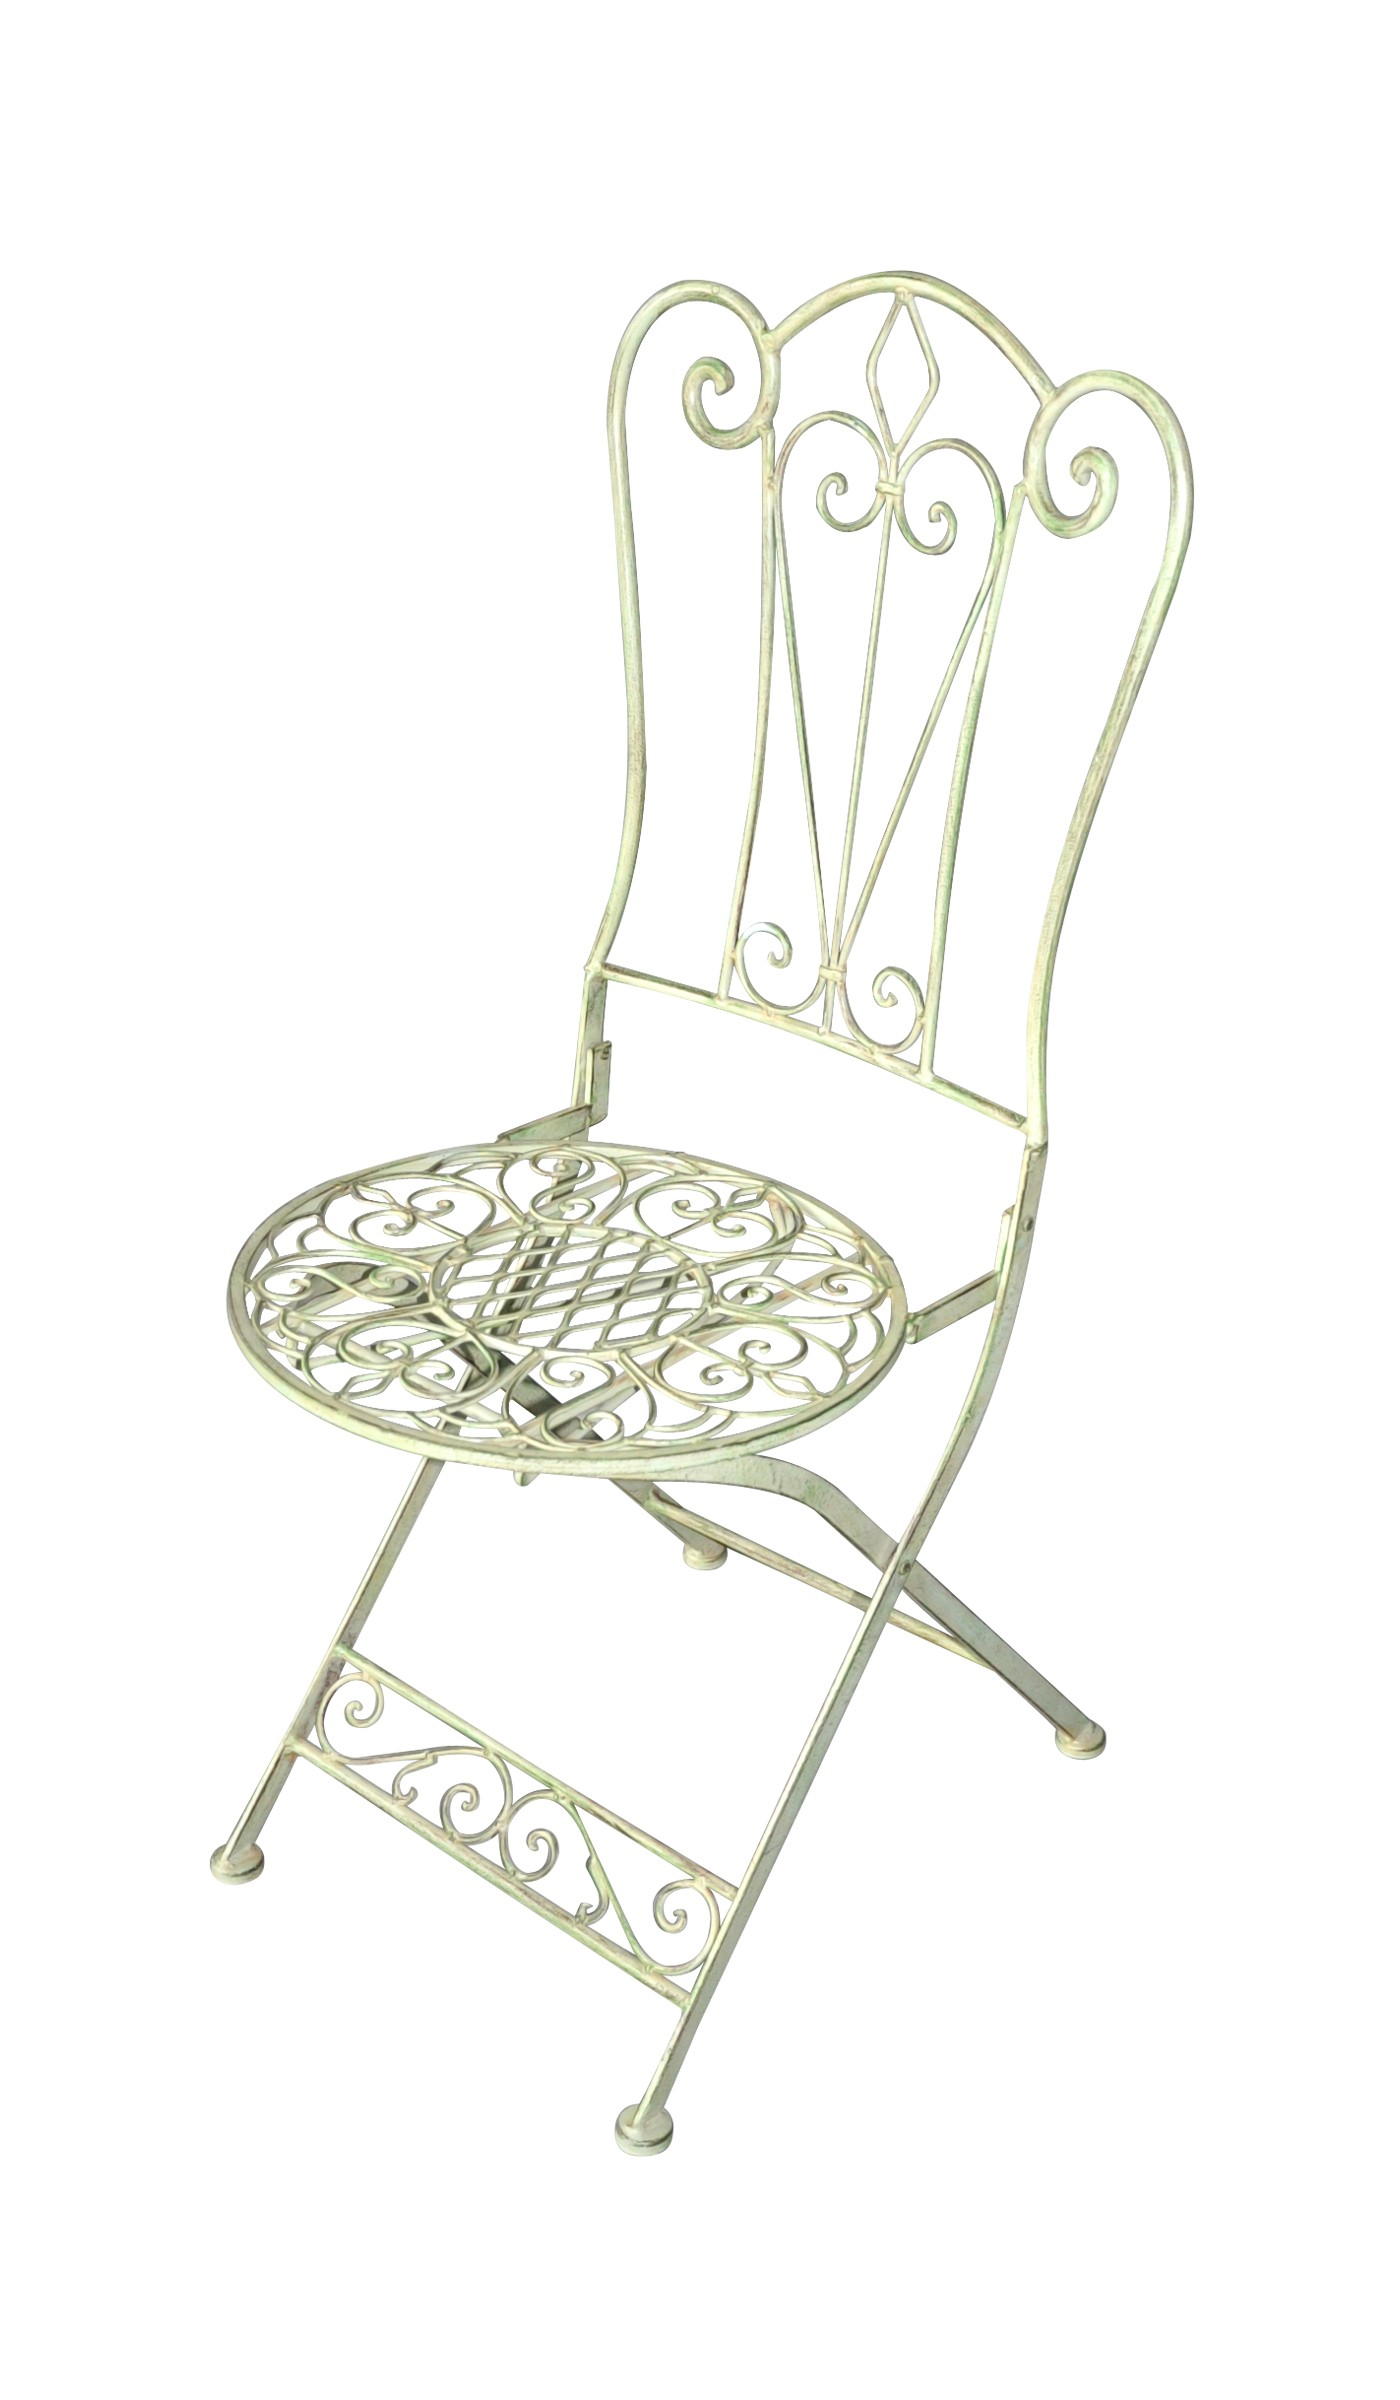 chaise fleur de lys en fer forg vert pale demeure et jardin. Black Bedroom Furniture Sets. Home Design Ideas